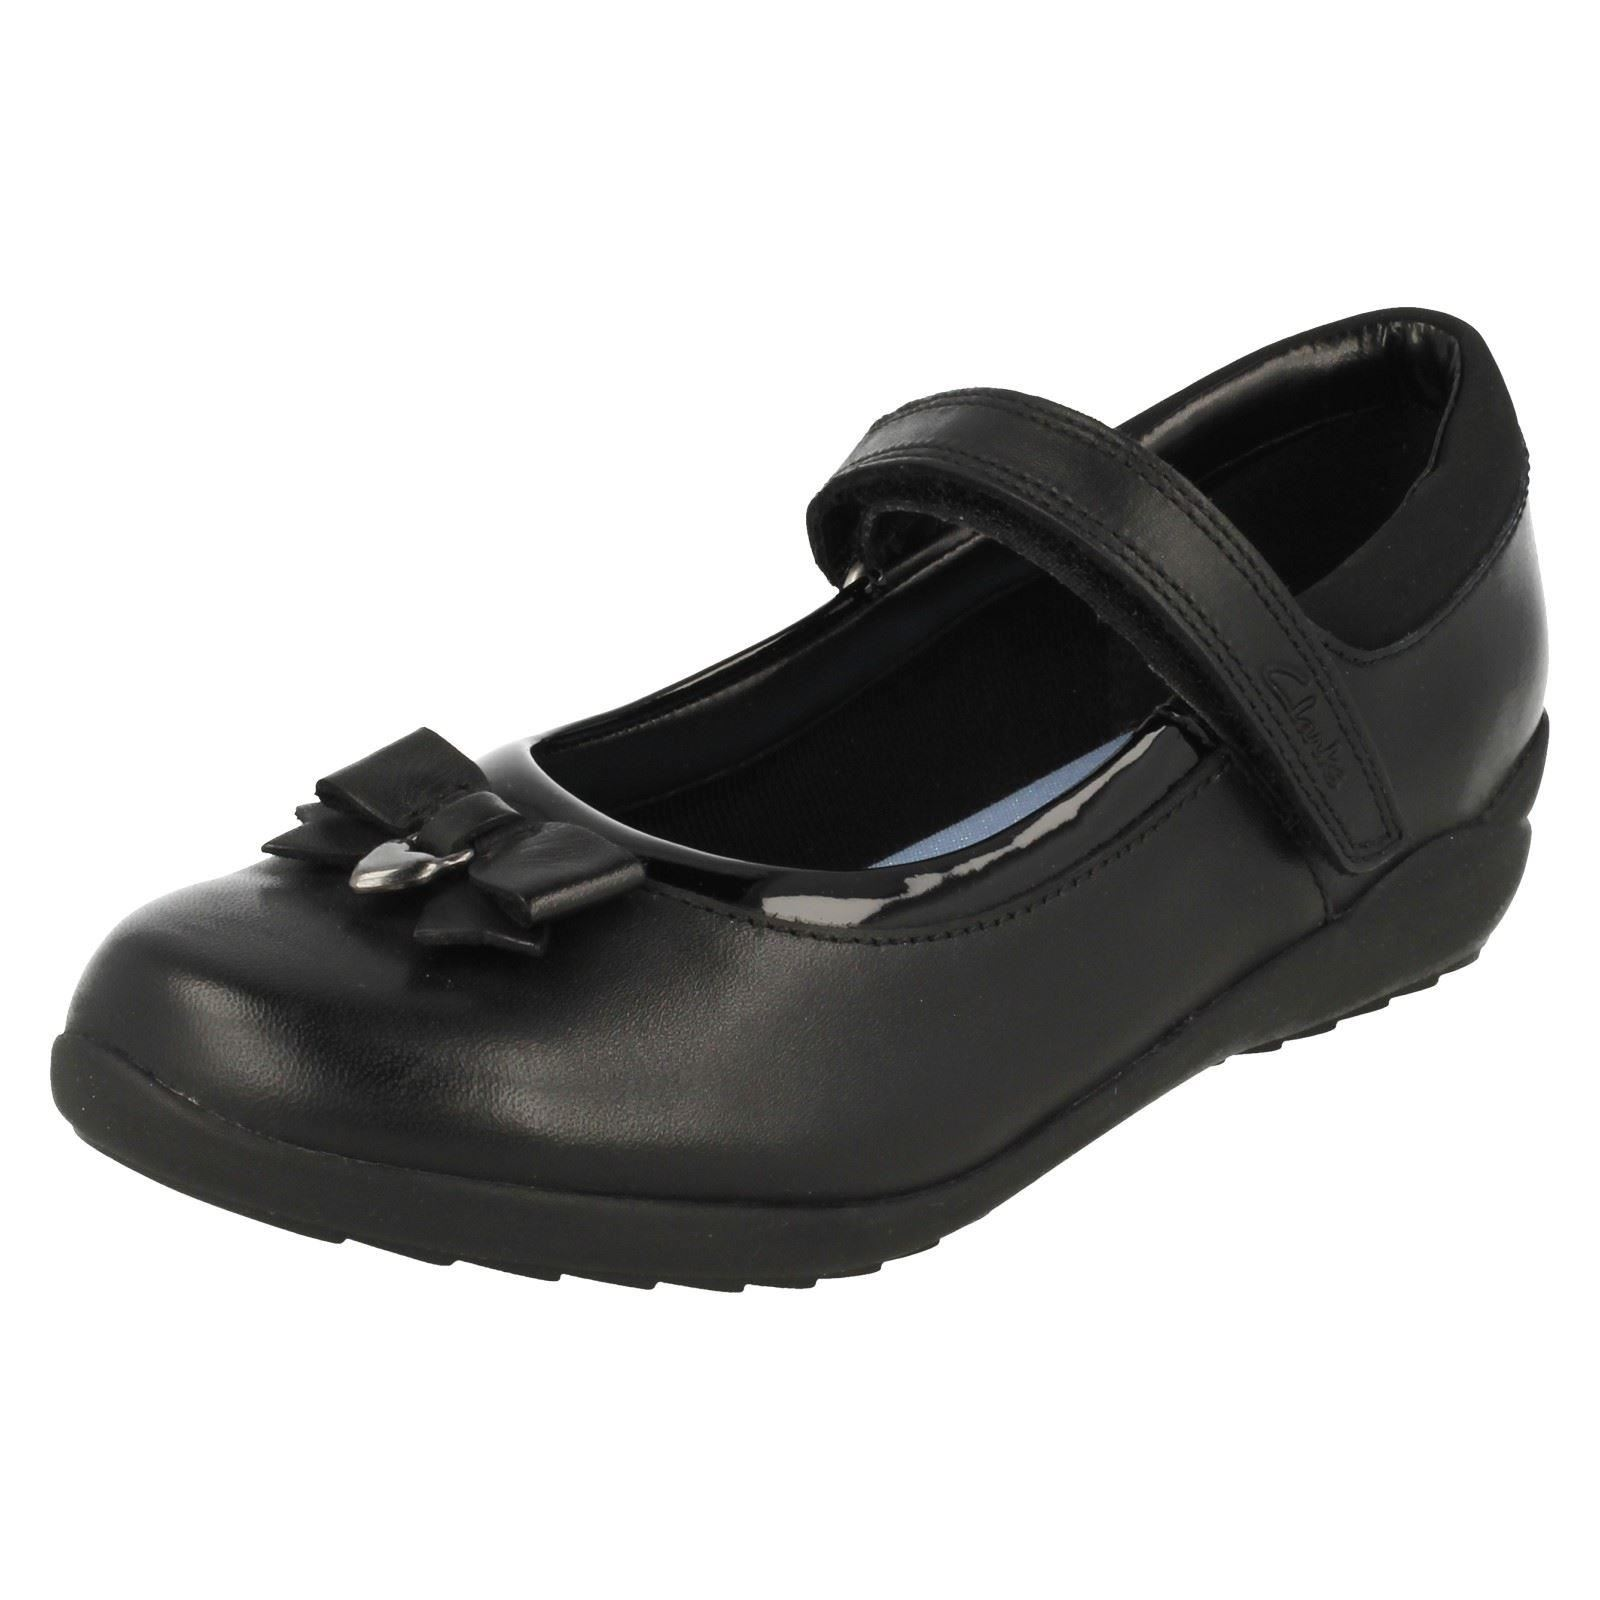 448f38a115e3 Girls Clarks Smart School Shoes Ting Fever INF UK 12 Kids Black Leather H.  About this product. Picture 1 of 10  Picture 2 of 10 ...